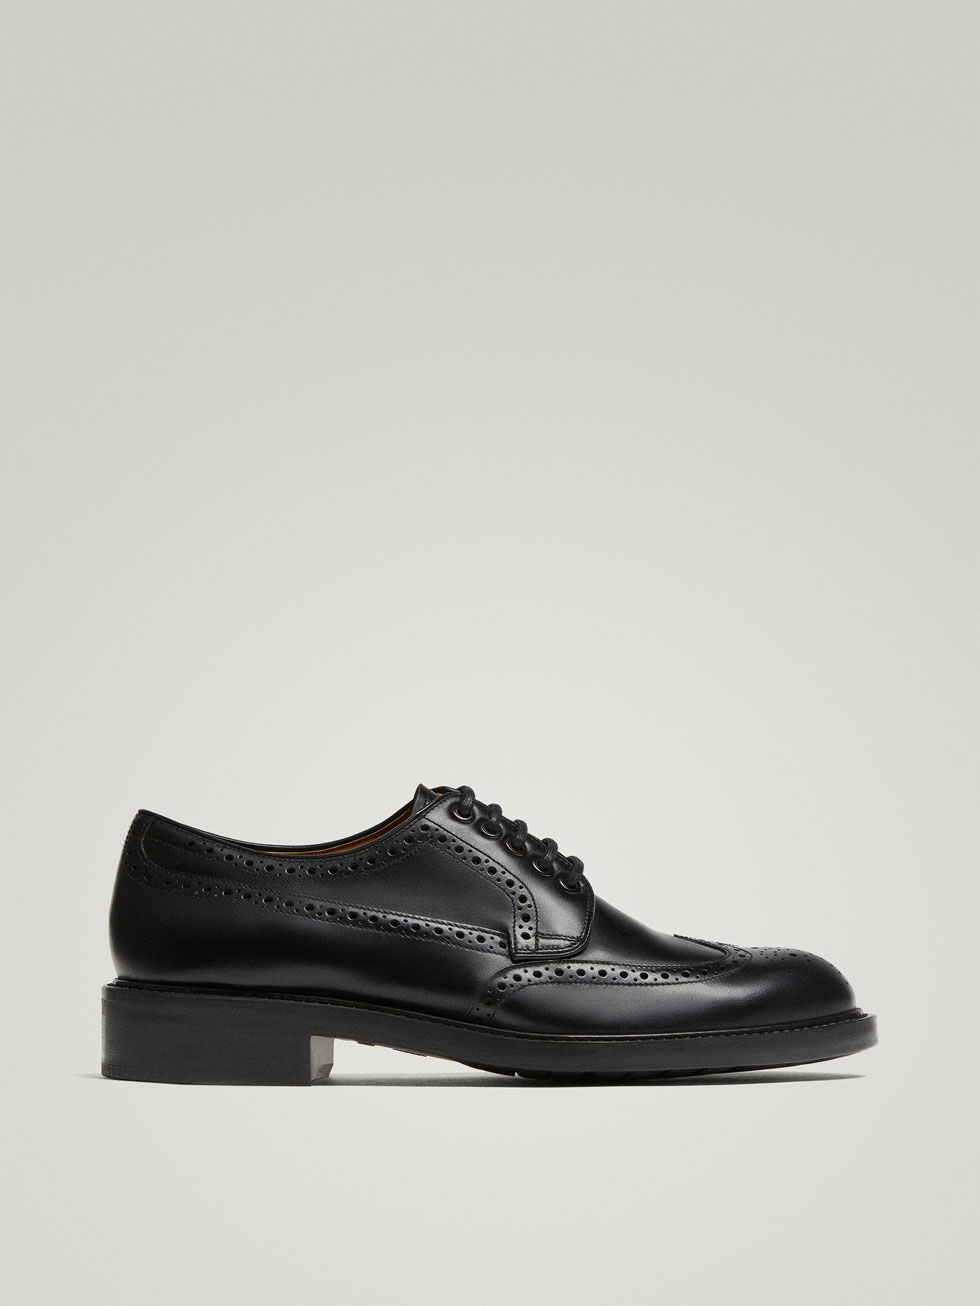 Black Leather Brogues by Massimo Dutti